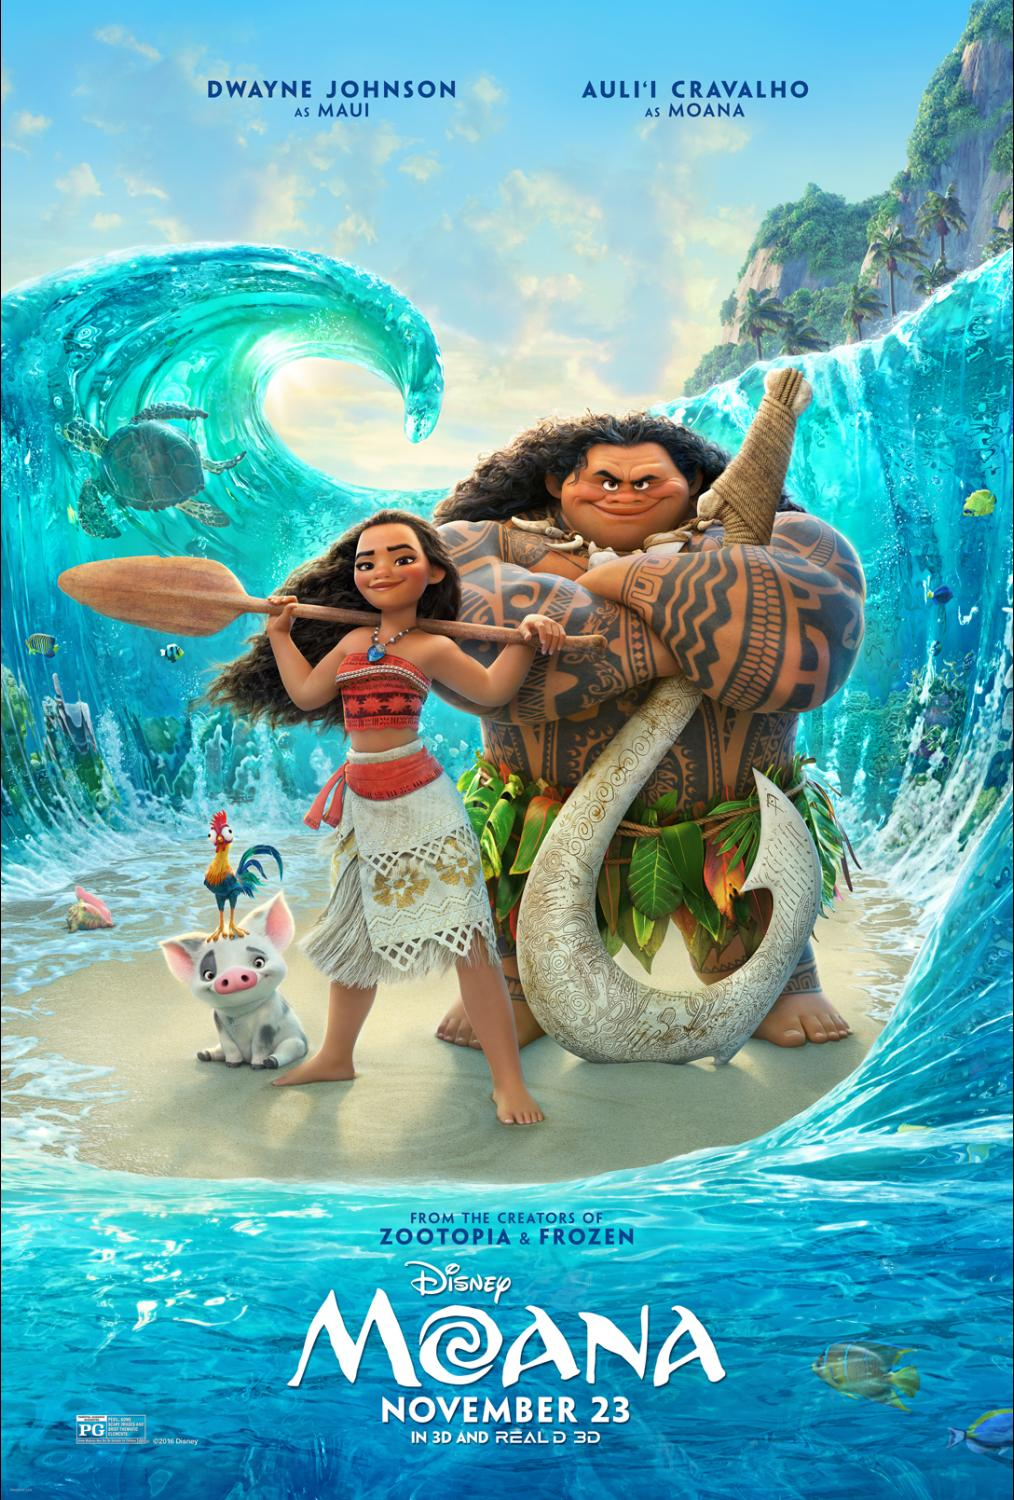 photograph relating to Moana Sail Printable referred to as Disneys MOANA online video study and No cost printable coloring